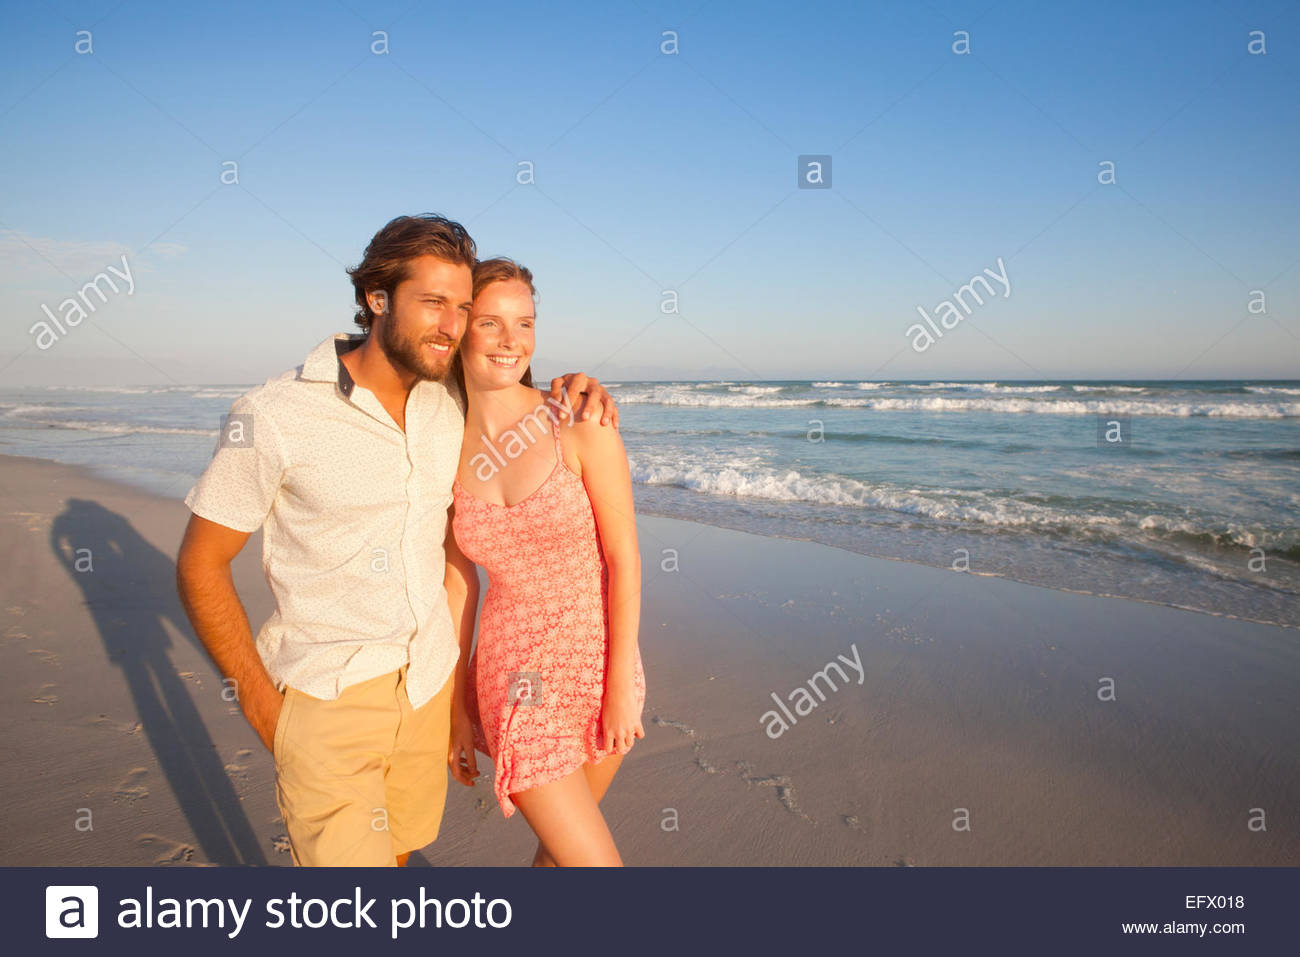 Smiling couple, man with arm round woman, walking along sunny beach - Stock Image